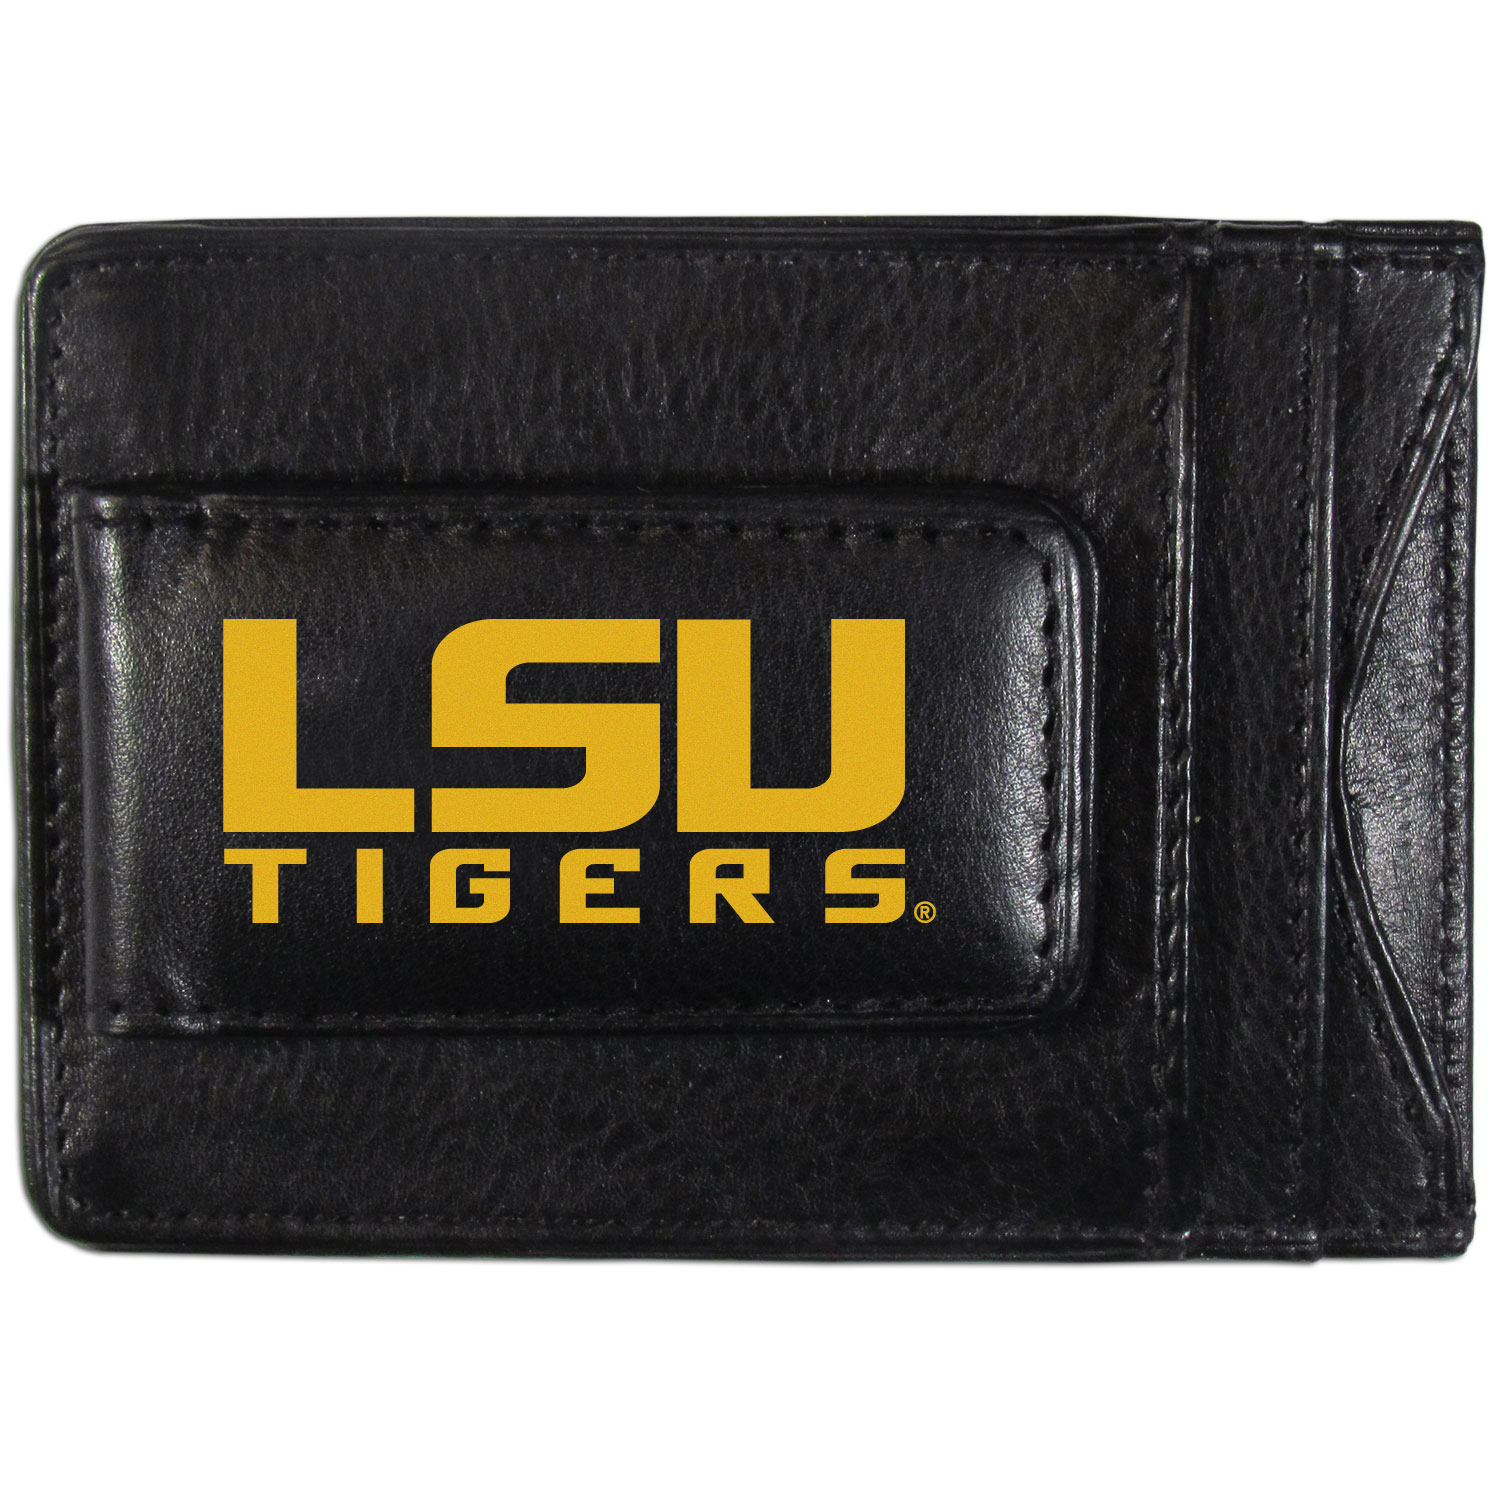 LSU Tigers Logo Leather Cash and Cardholder - This super slim leather wallet lets you have all the benefits of a money clip while keeping the organization of a wallet. On one side of this front pocket wallet there is a strong, magnetic money clip to keep your cash easily accessible and the?LSU Tigers team logo on the front. The versatile men's accessory is a perfect addition to your fan apparel.